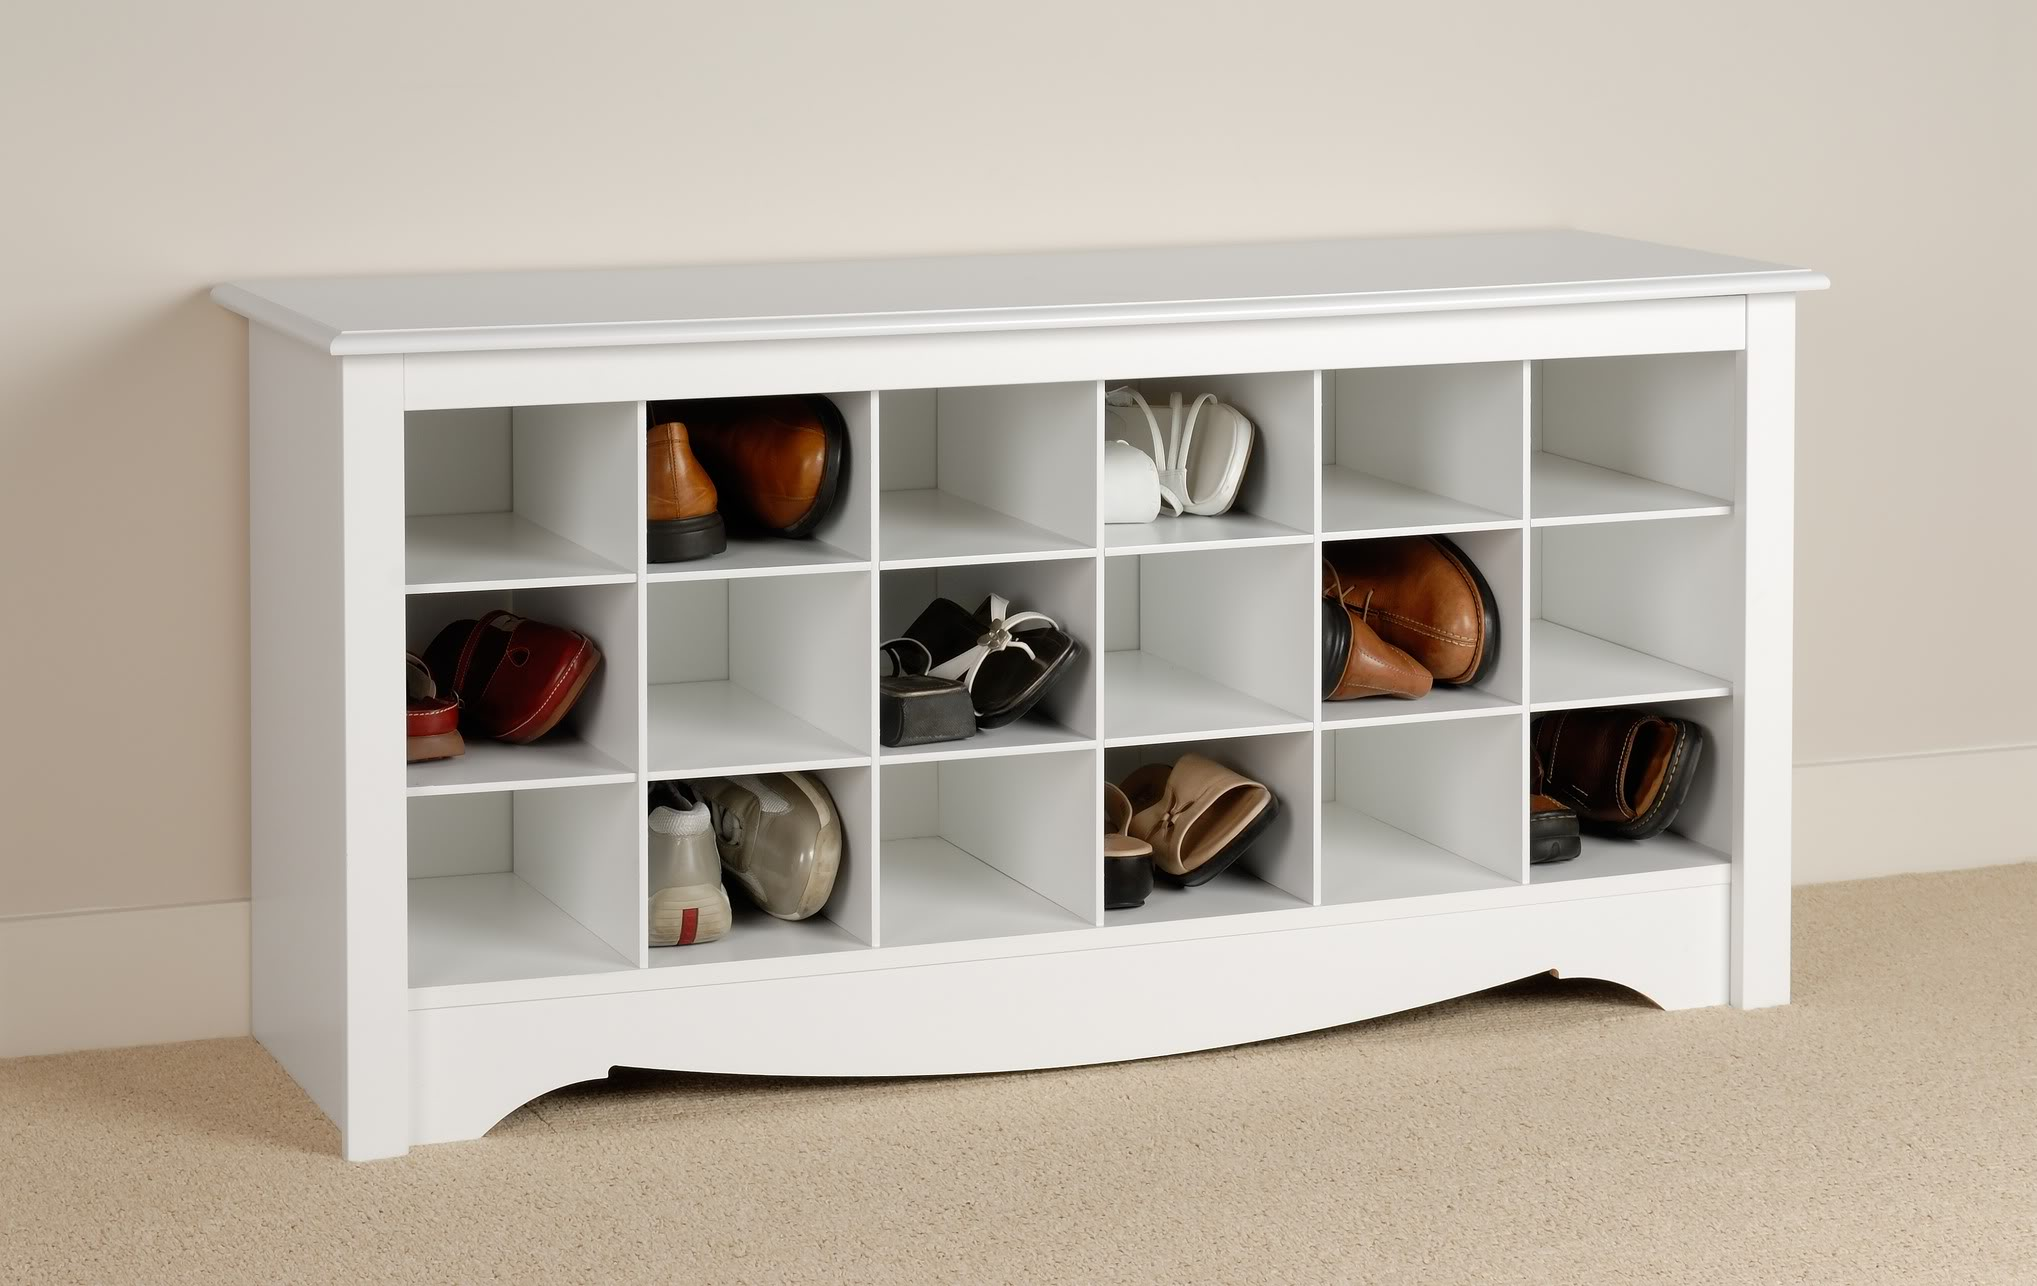 Prepac Shoe Storage Cubbies Bench (Image 6 of 10)